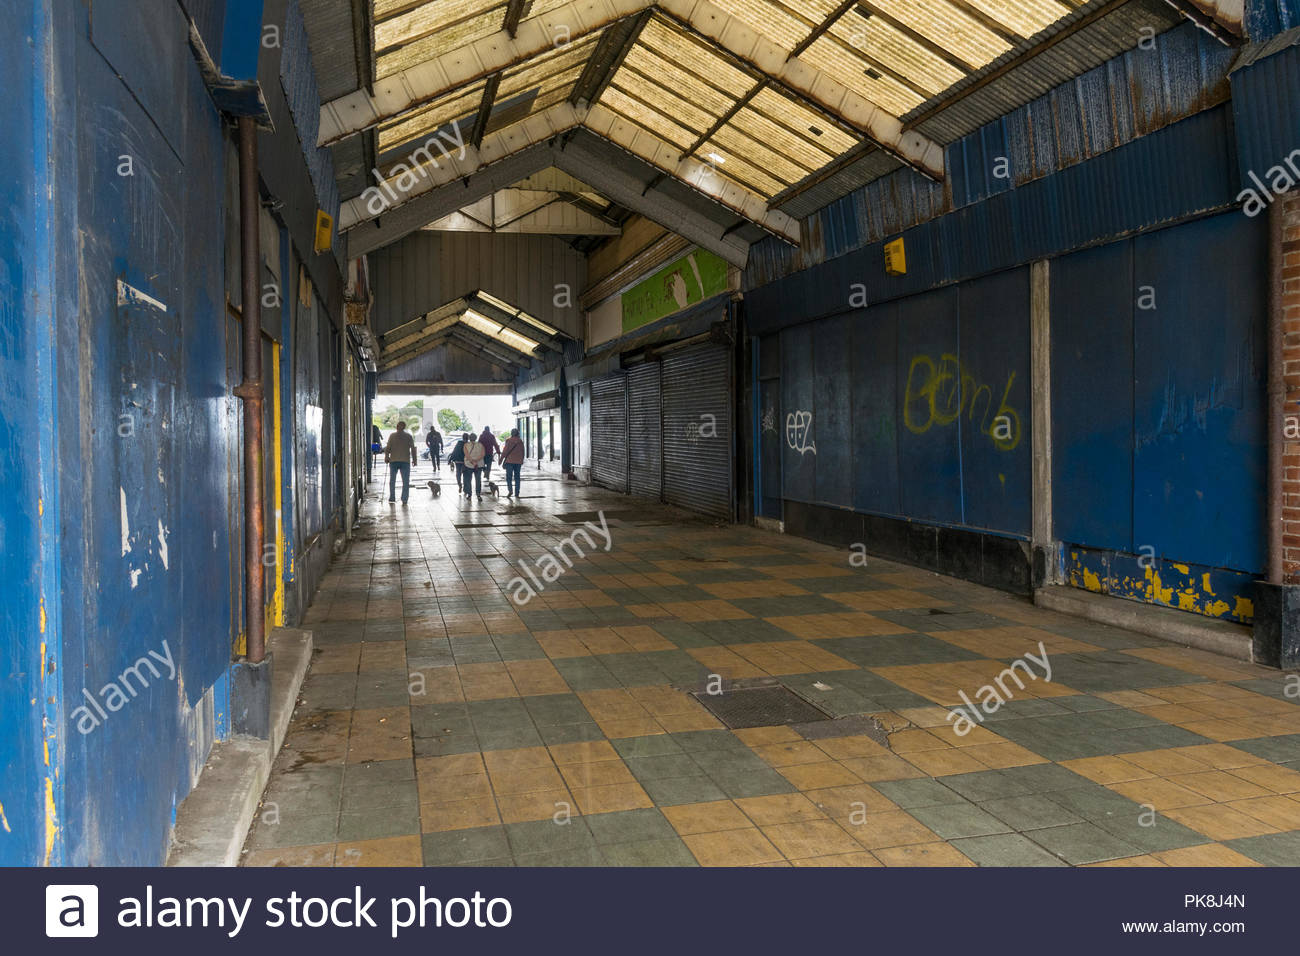 The run down arcade from the Promenade in Morecambe has seen better days - Stock Image